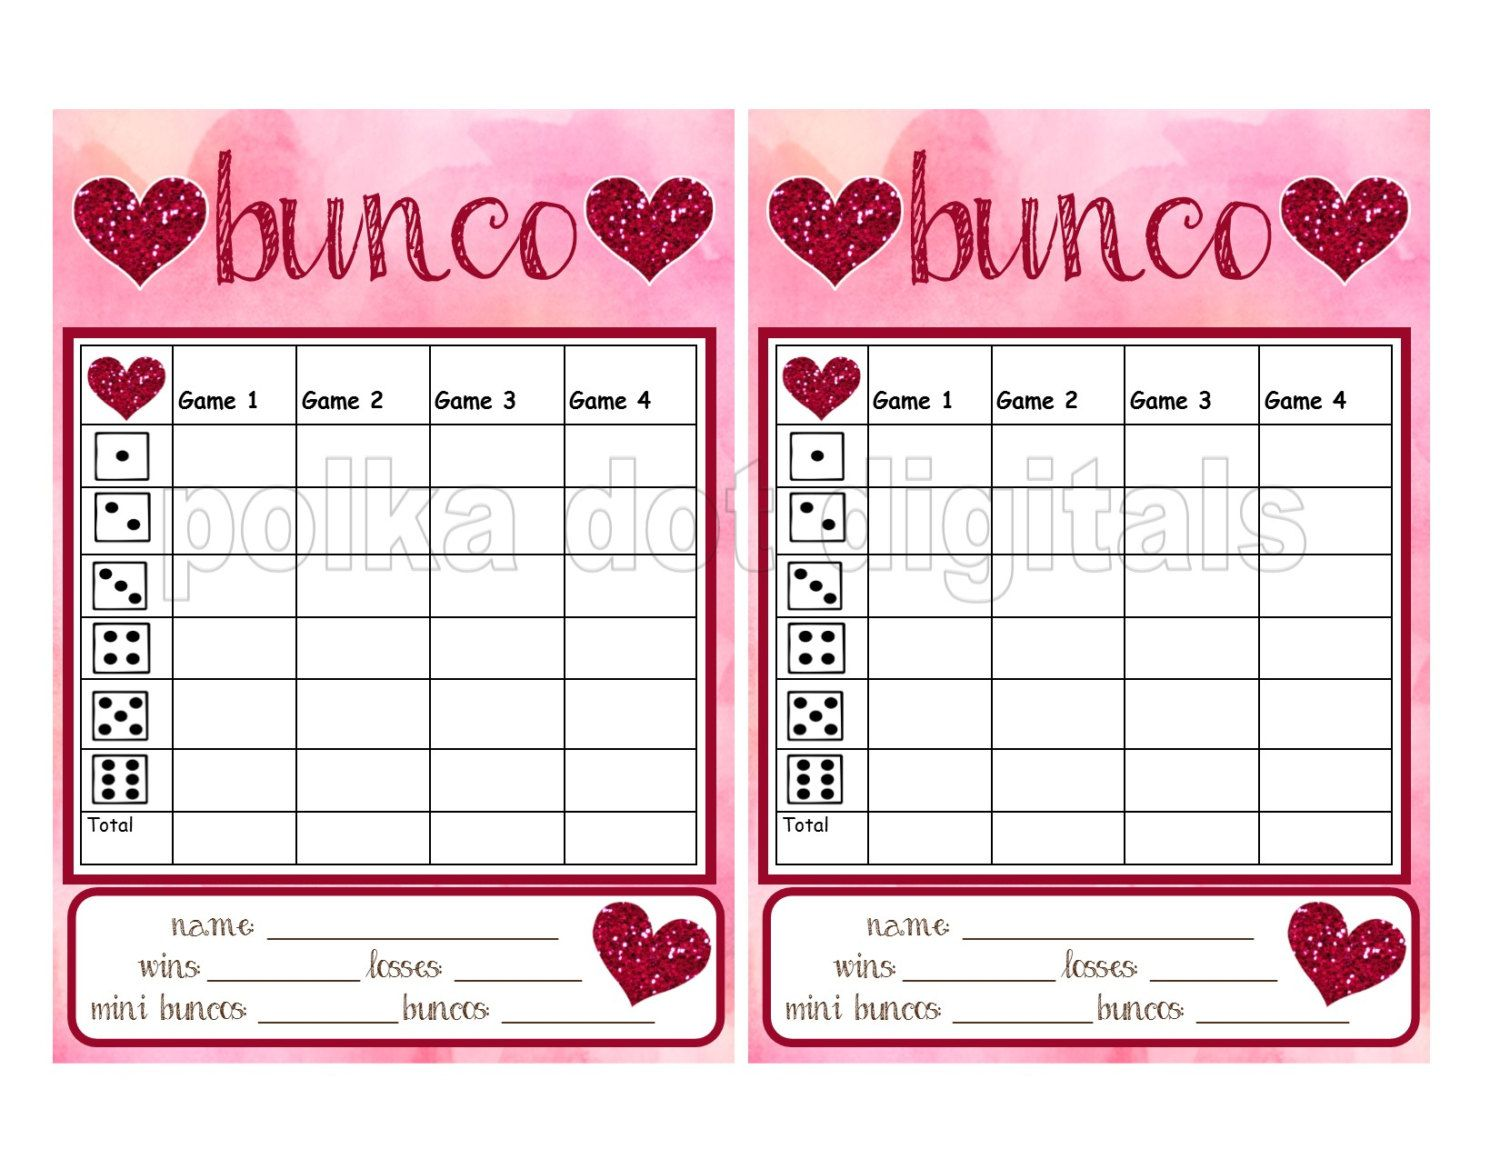 Buy 2 Get 1 Free Glitter Hearts Valentine S Complete Set Bunco Score Card Sheet Matching Table